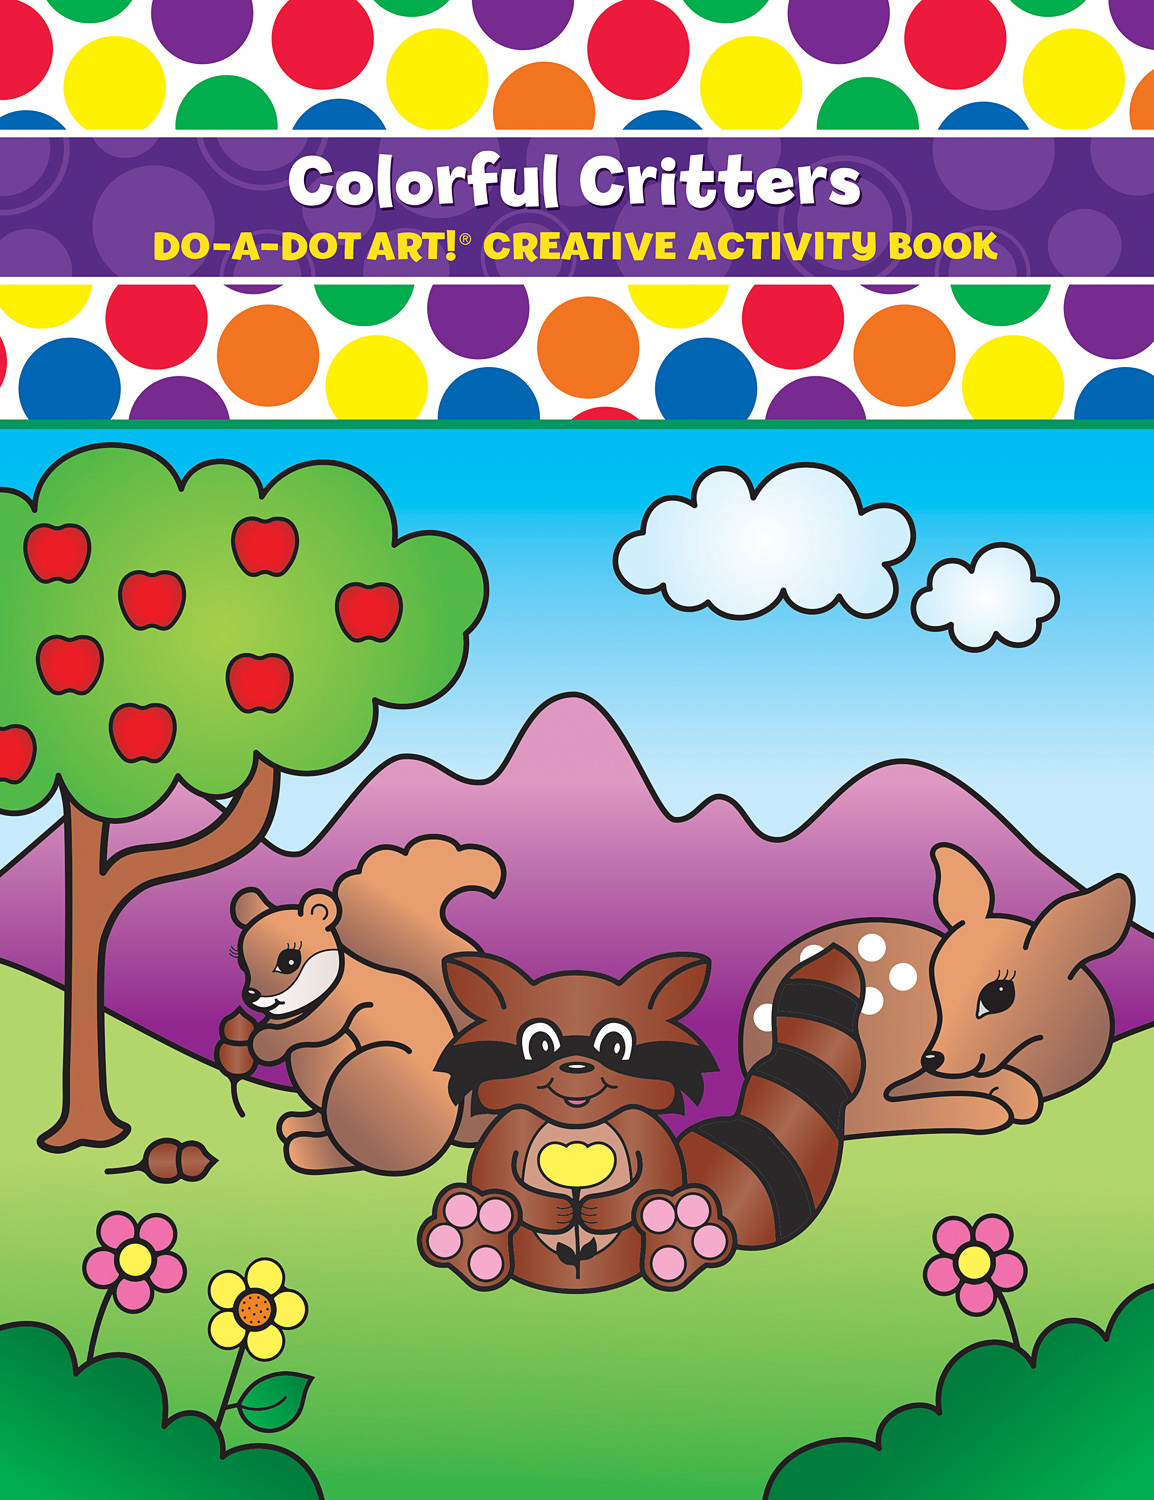 DO-A-DOT ART COLORFUL CRITTERS ACTIVITY BOOK